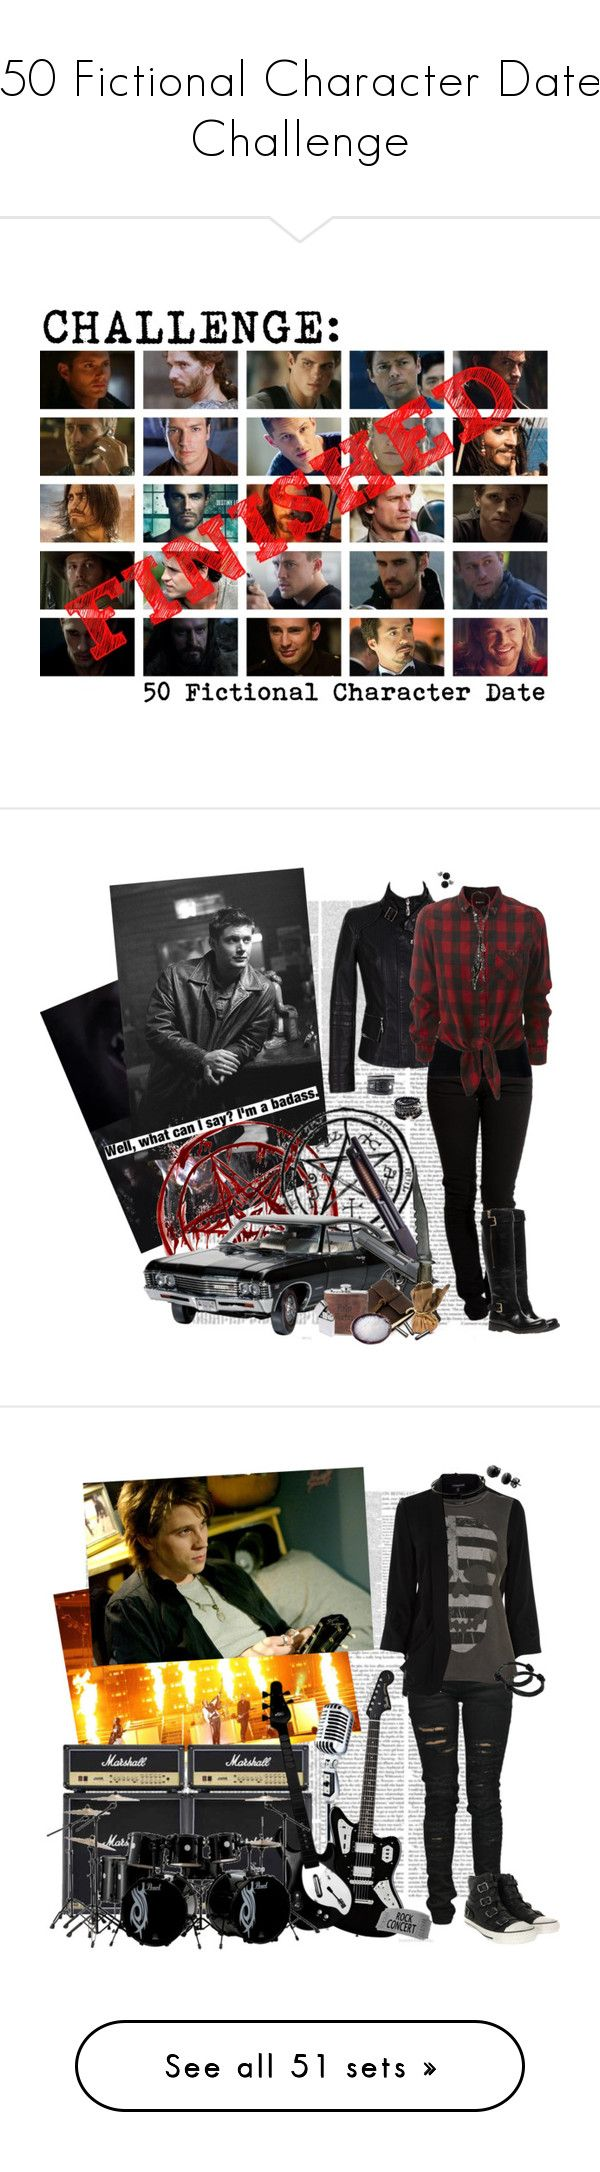 """""""50 Fictional Character Date Challenge"""" by phyxsius ❤ liked on Polyvore featuring art, Levi's, Valentino, Rustico, GUESS, KD2024, La Mer, Swesky, Warehouse and Denim of Virtue"""